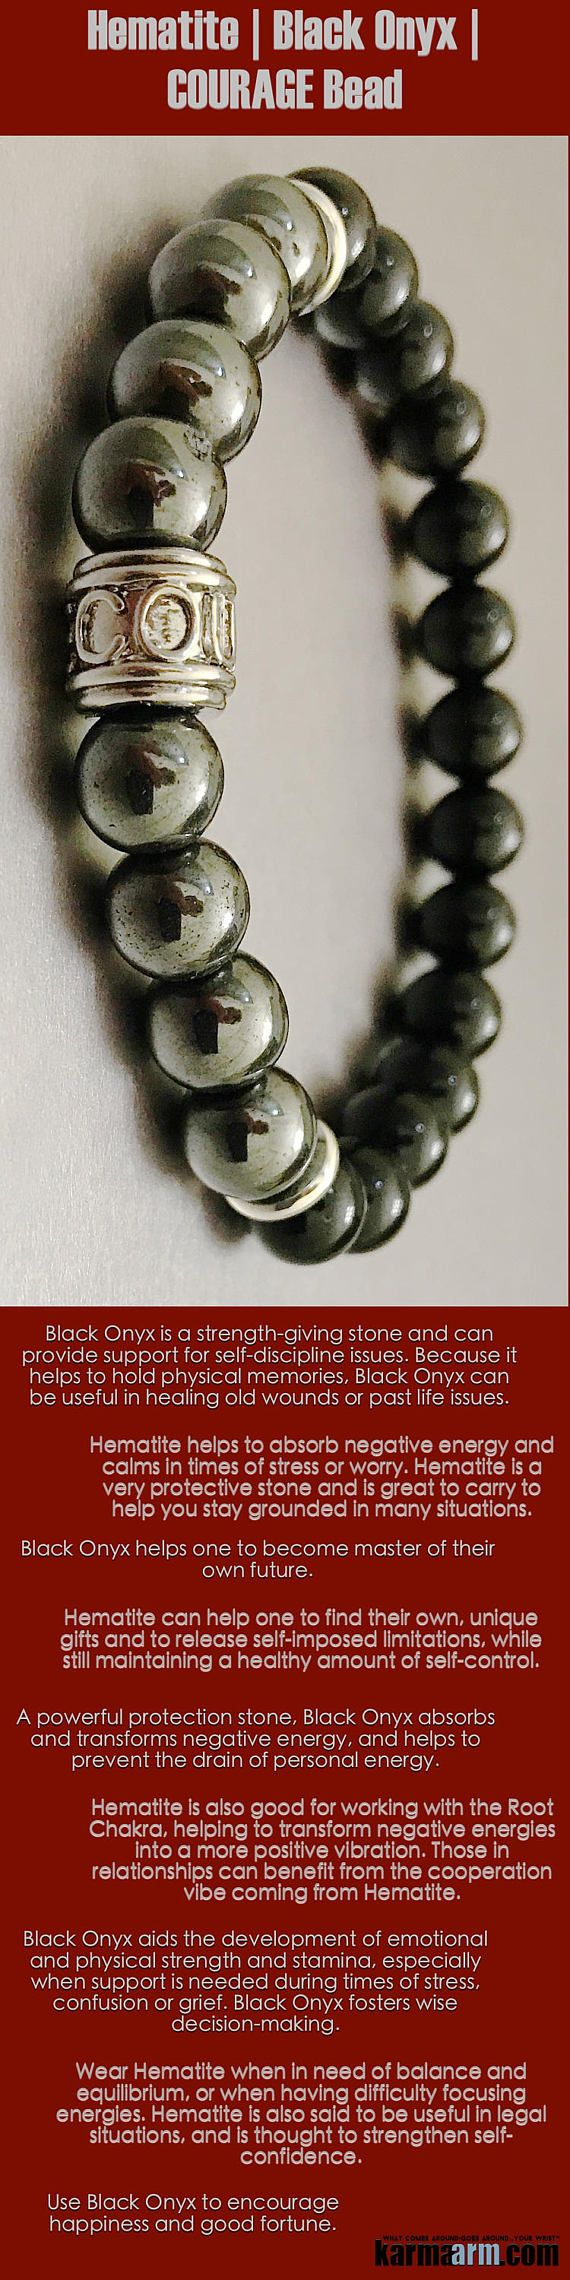 Hematite is good for working with the #Root #Chakra, transforming negative energies into positive #vibrations. Those in #relationships can benefit from the cooperation #vibe coming from #Hematite. #Courage #Onyx #black  #Law #Attraction #LOA #Love #Beaded #Bracelet #Yoga #Chakra #Mala #Stretch #Meditation #handmade #Jewelry #Energy #Healing #gratitude #gifts #Crystals #Stacks #pulseiras #Bijoux #Handmade #Reiki #Mala #Buddhist #Charm #Mens #Womens #For #Her #Him #FEARLESS